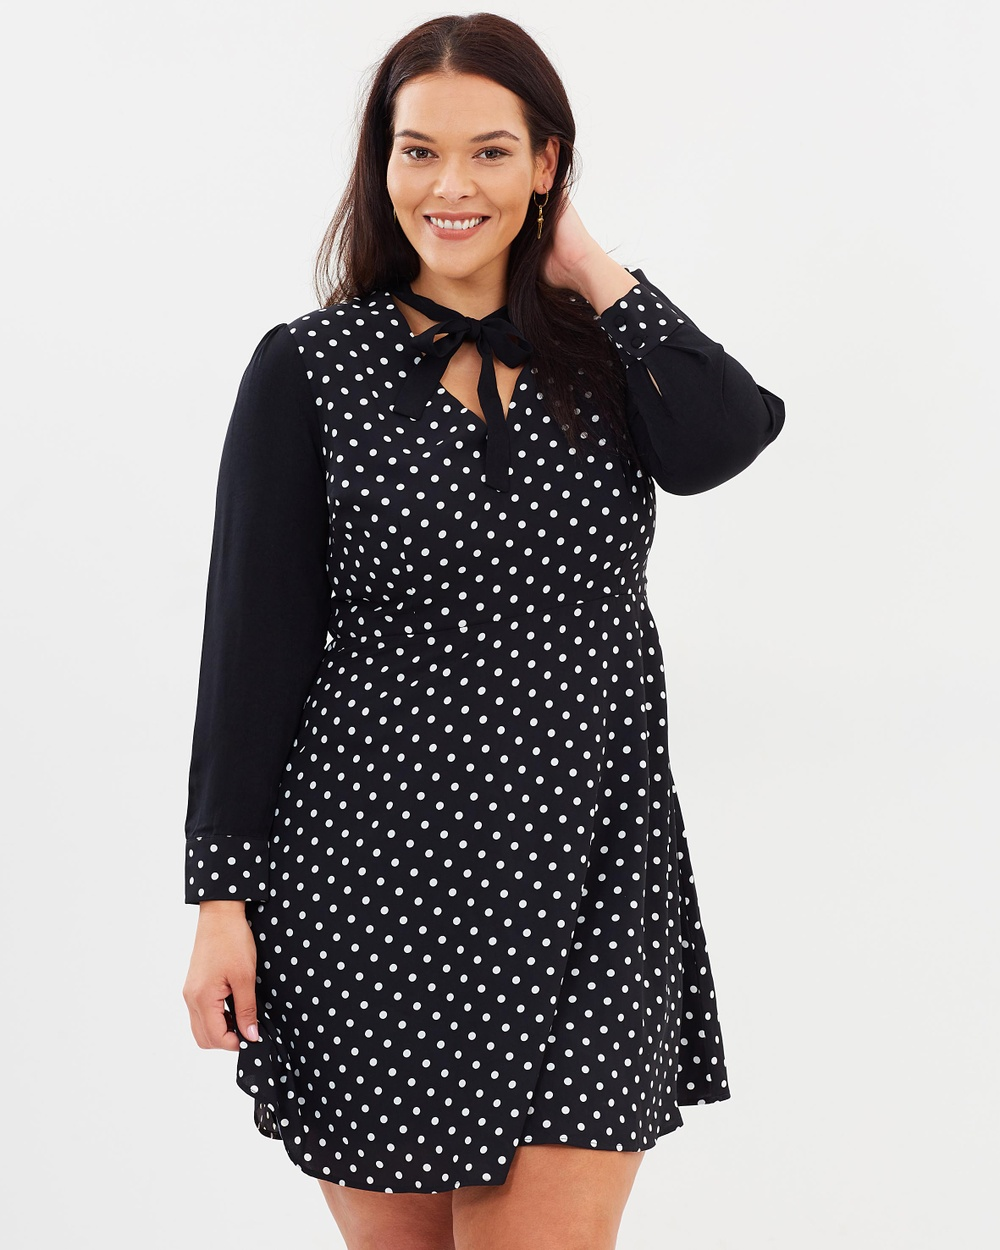 Atmos & Here Curvy ICONIC EXCLUSIVE Marika Shirt Dress Printed Dresses Polka Dot ICONIC EXCLUSIVE Marika Shirt Dress